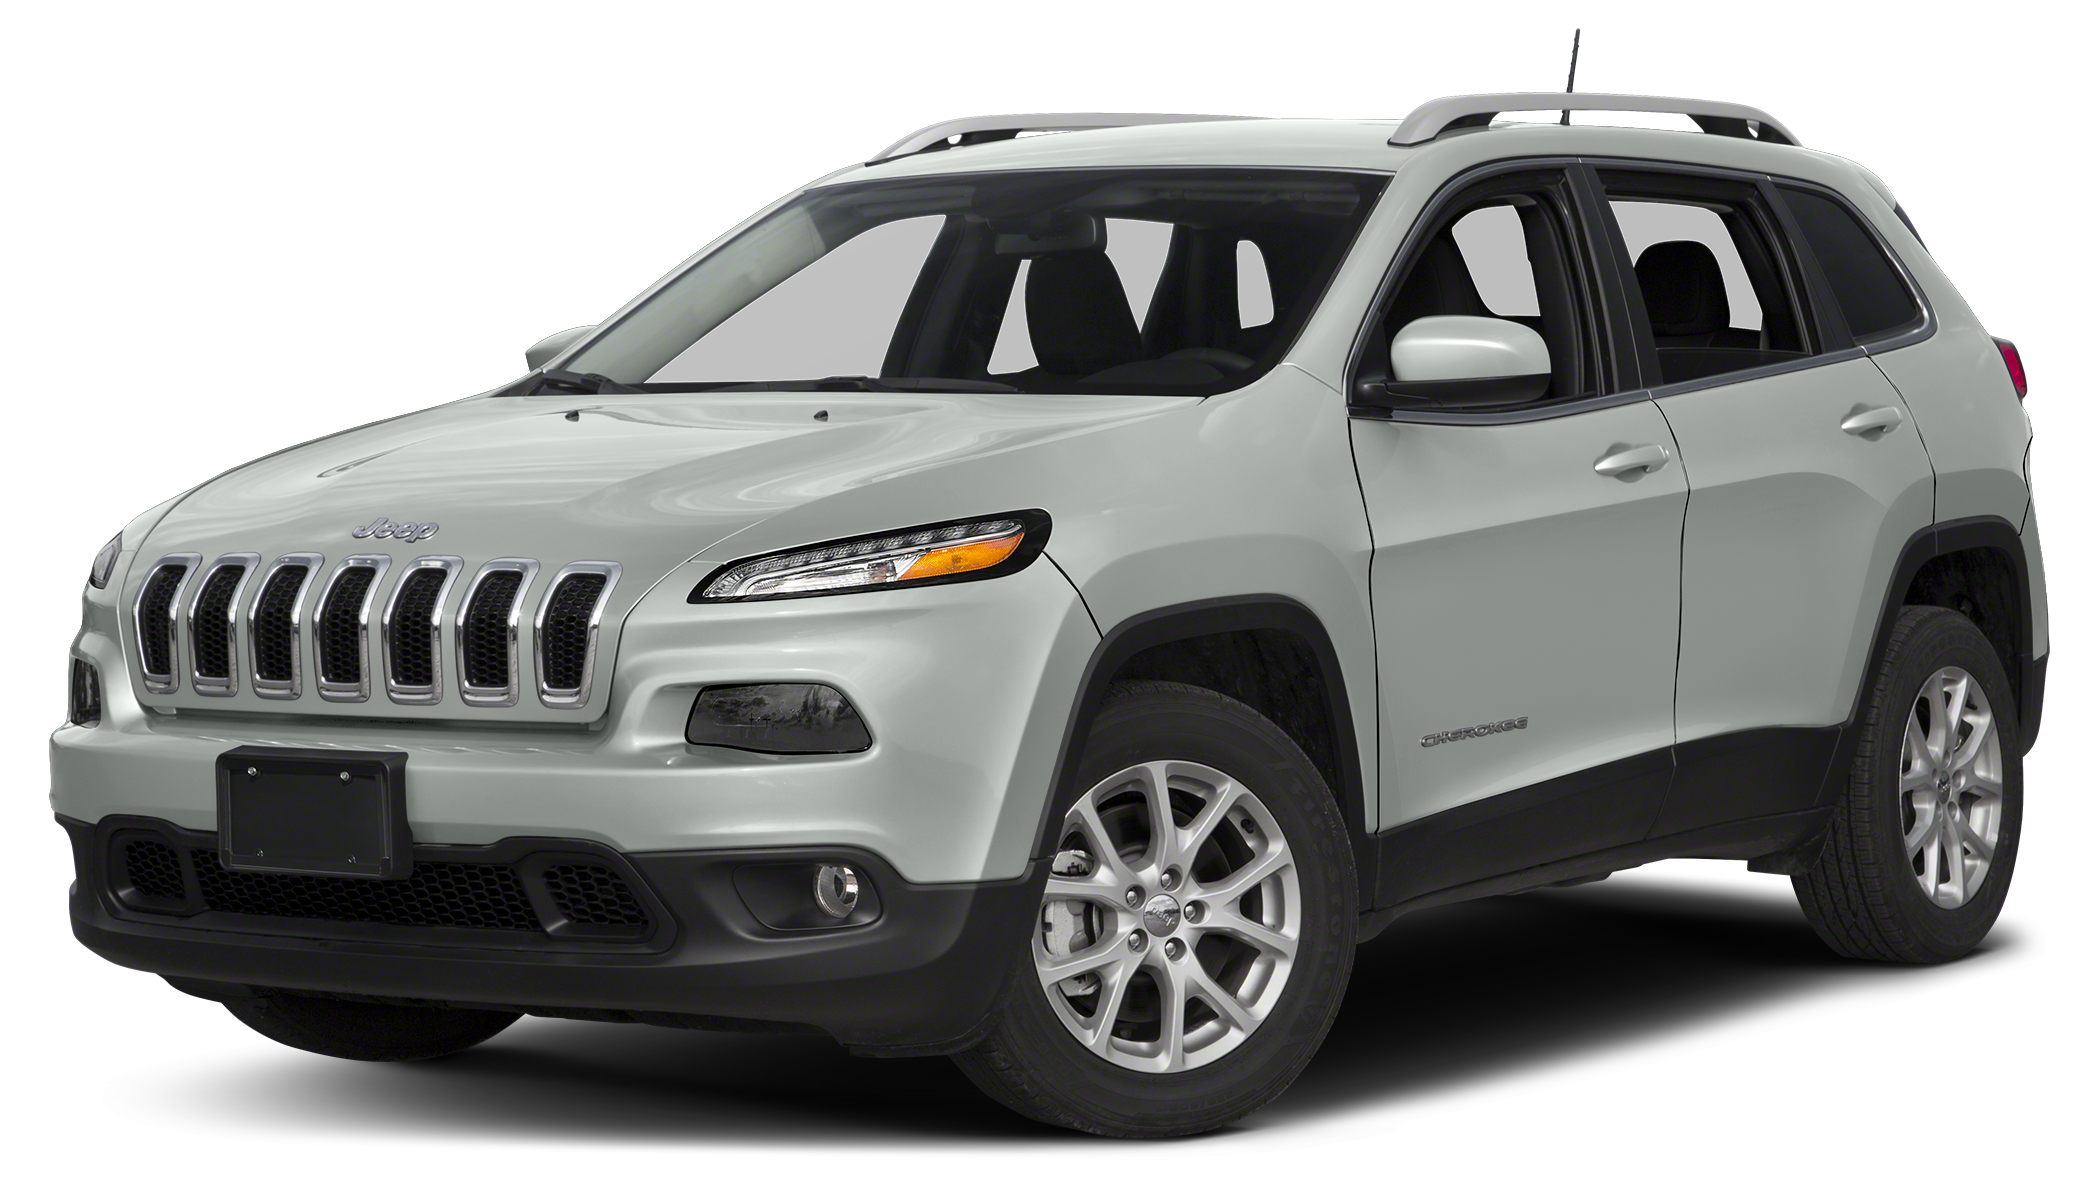 2015 Jeep Cherokee Latitude Thank you for your interest in one of Lake Keowee Chrysler Dodge Jeep